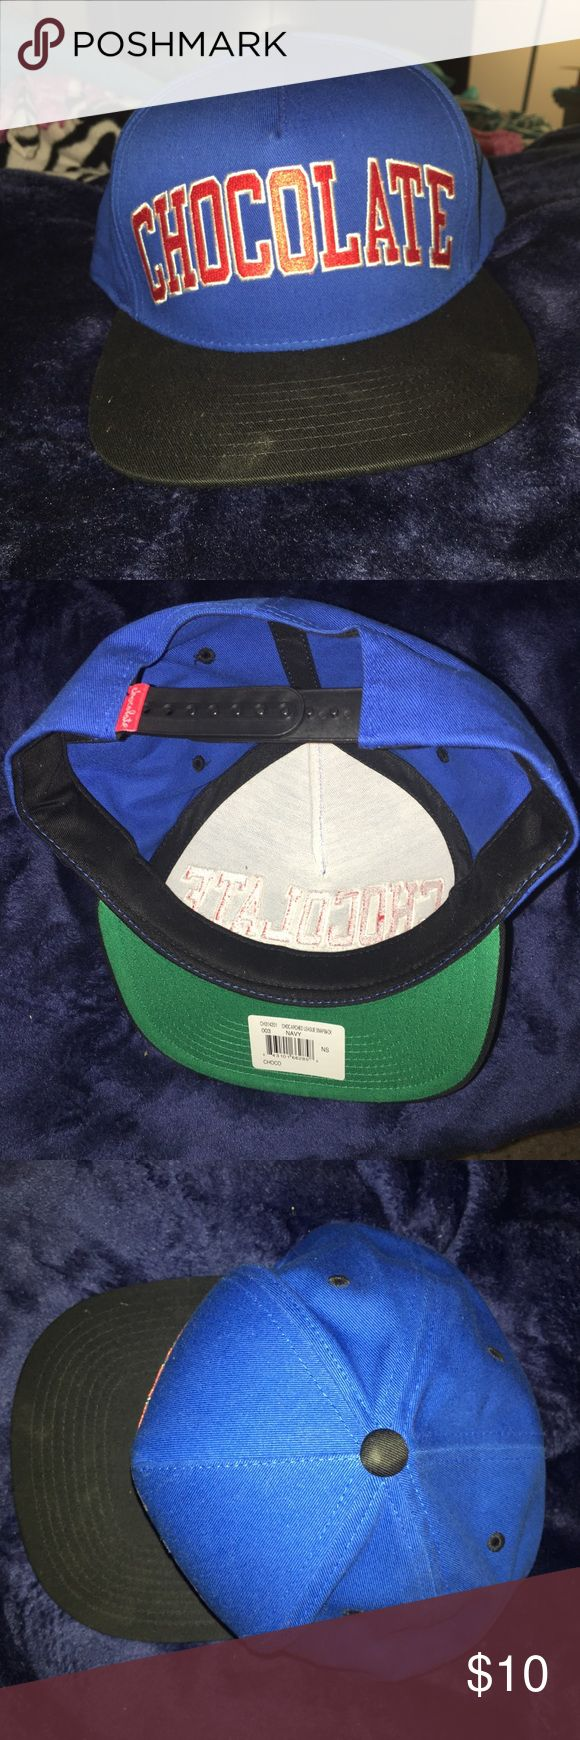 BRAND NEW Chocolate Skateboards Hat Brand New! Never worn! ALL OFFERS CONSIDERED. Chocolate Skateboards Other